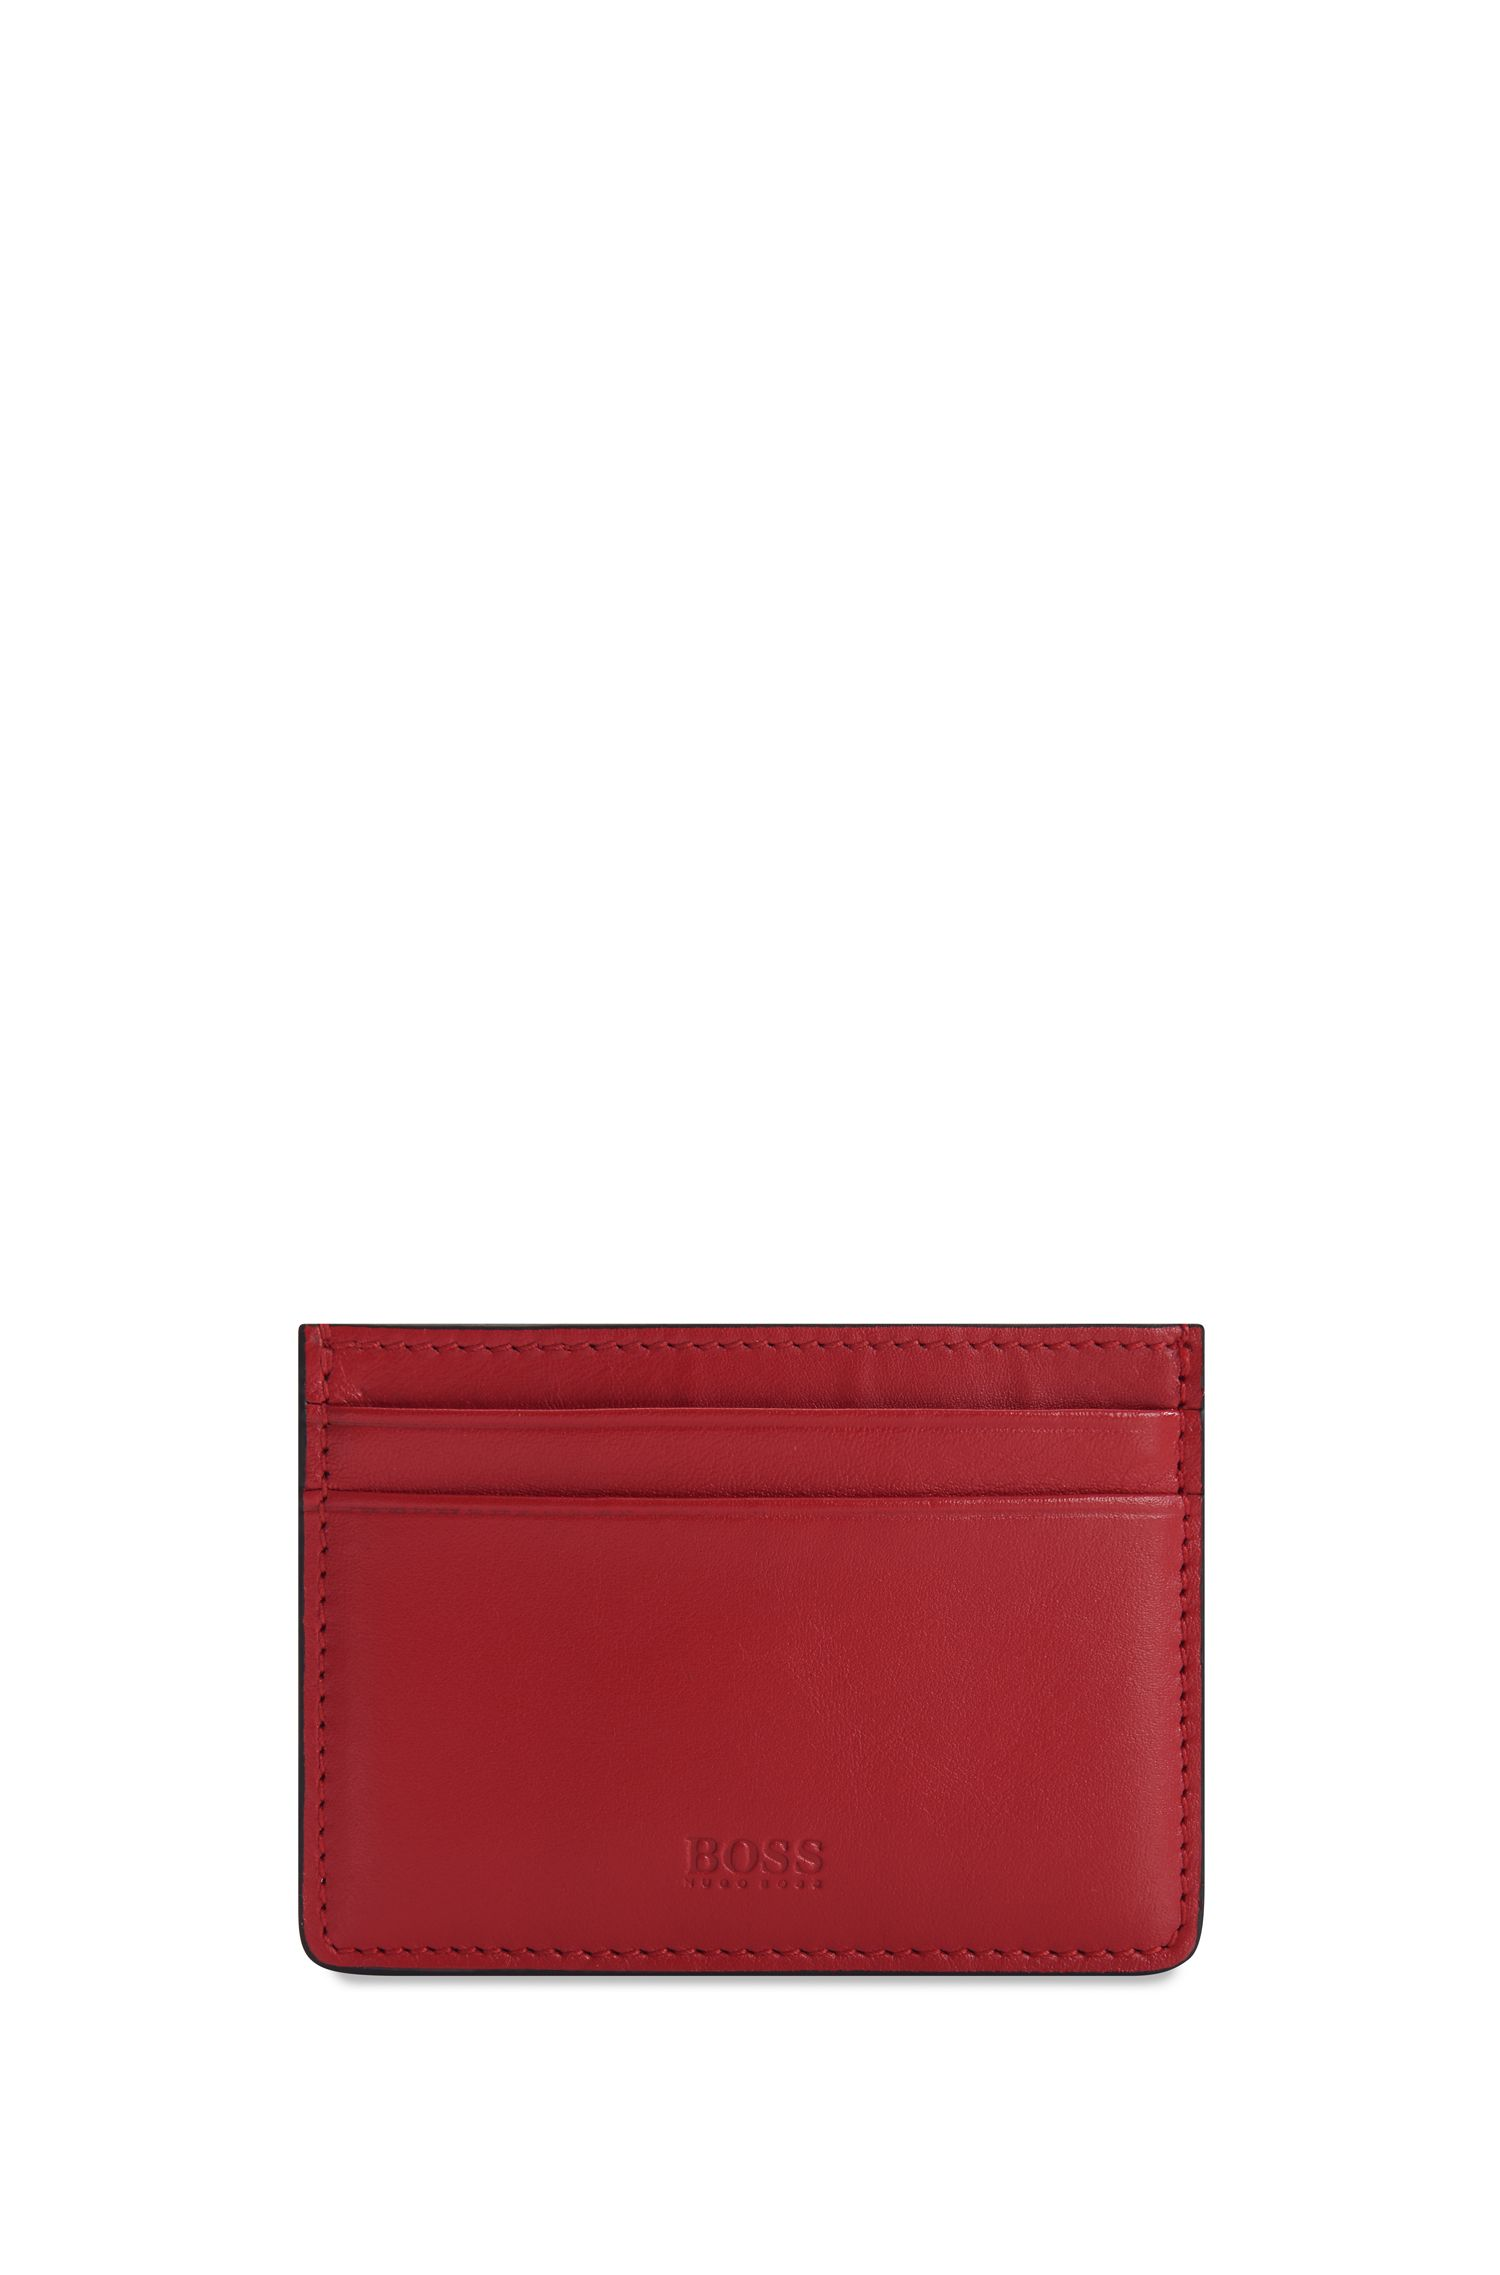 Lunar New Year Leather Cardholder | Holidays, Red